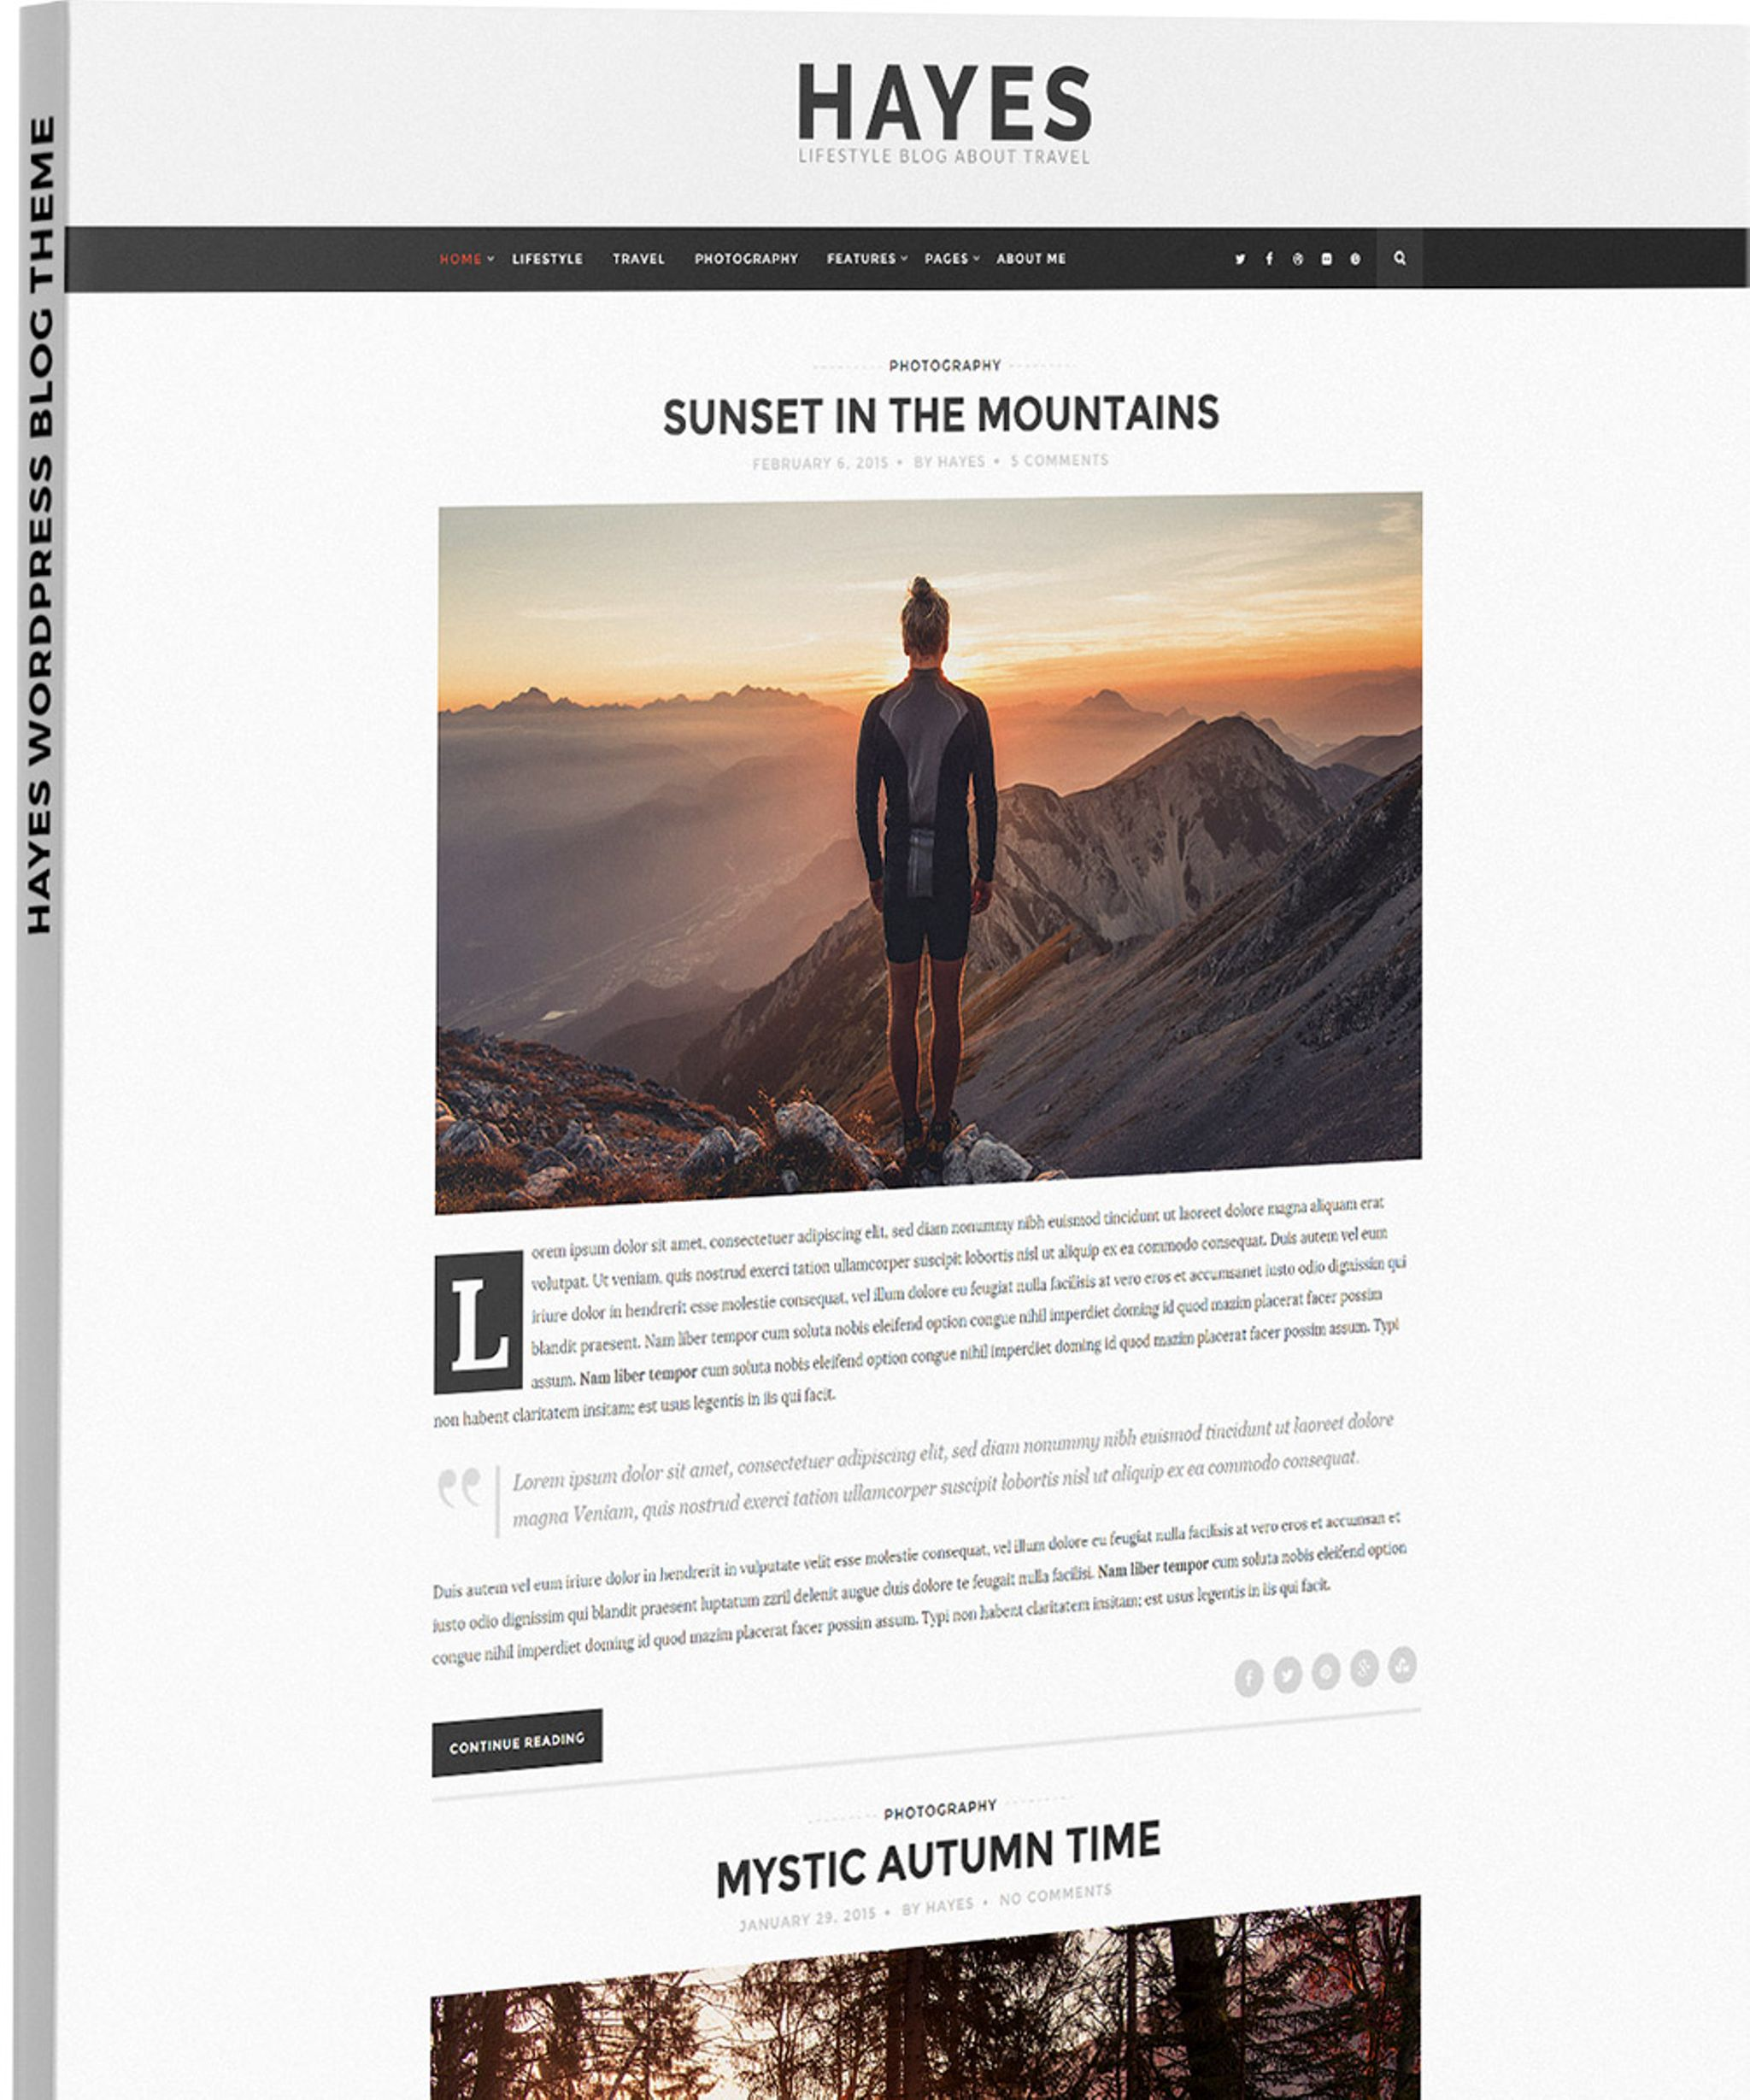 https://s3.tmimgcdn.com/templates/1759/scr/hayes-wordpress-theme-preview-3-s.jpg